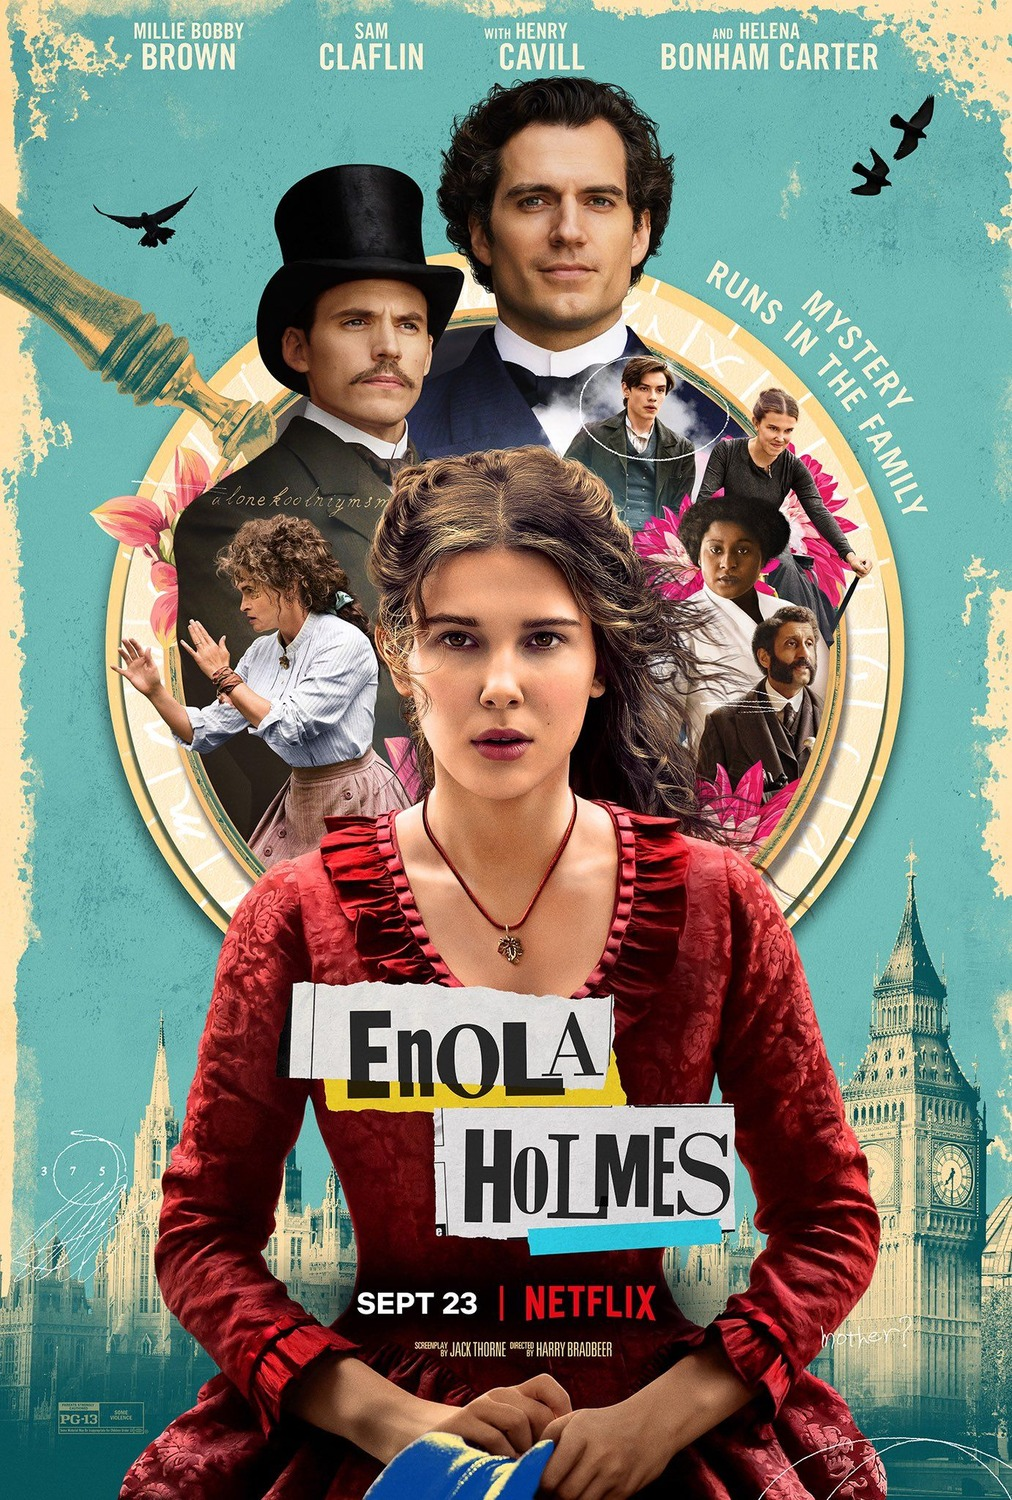 Enola Holmes (2020) HDRip x264 (Hindi+Tamill+Eng) Movie 1GB Esbu 720p Download